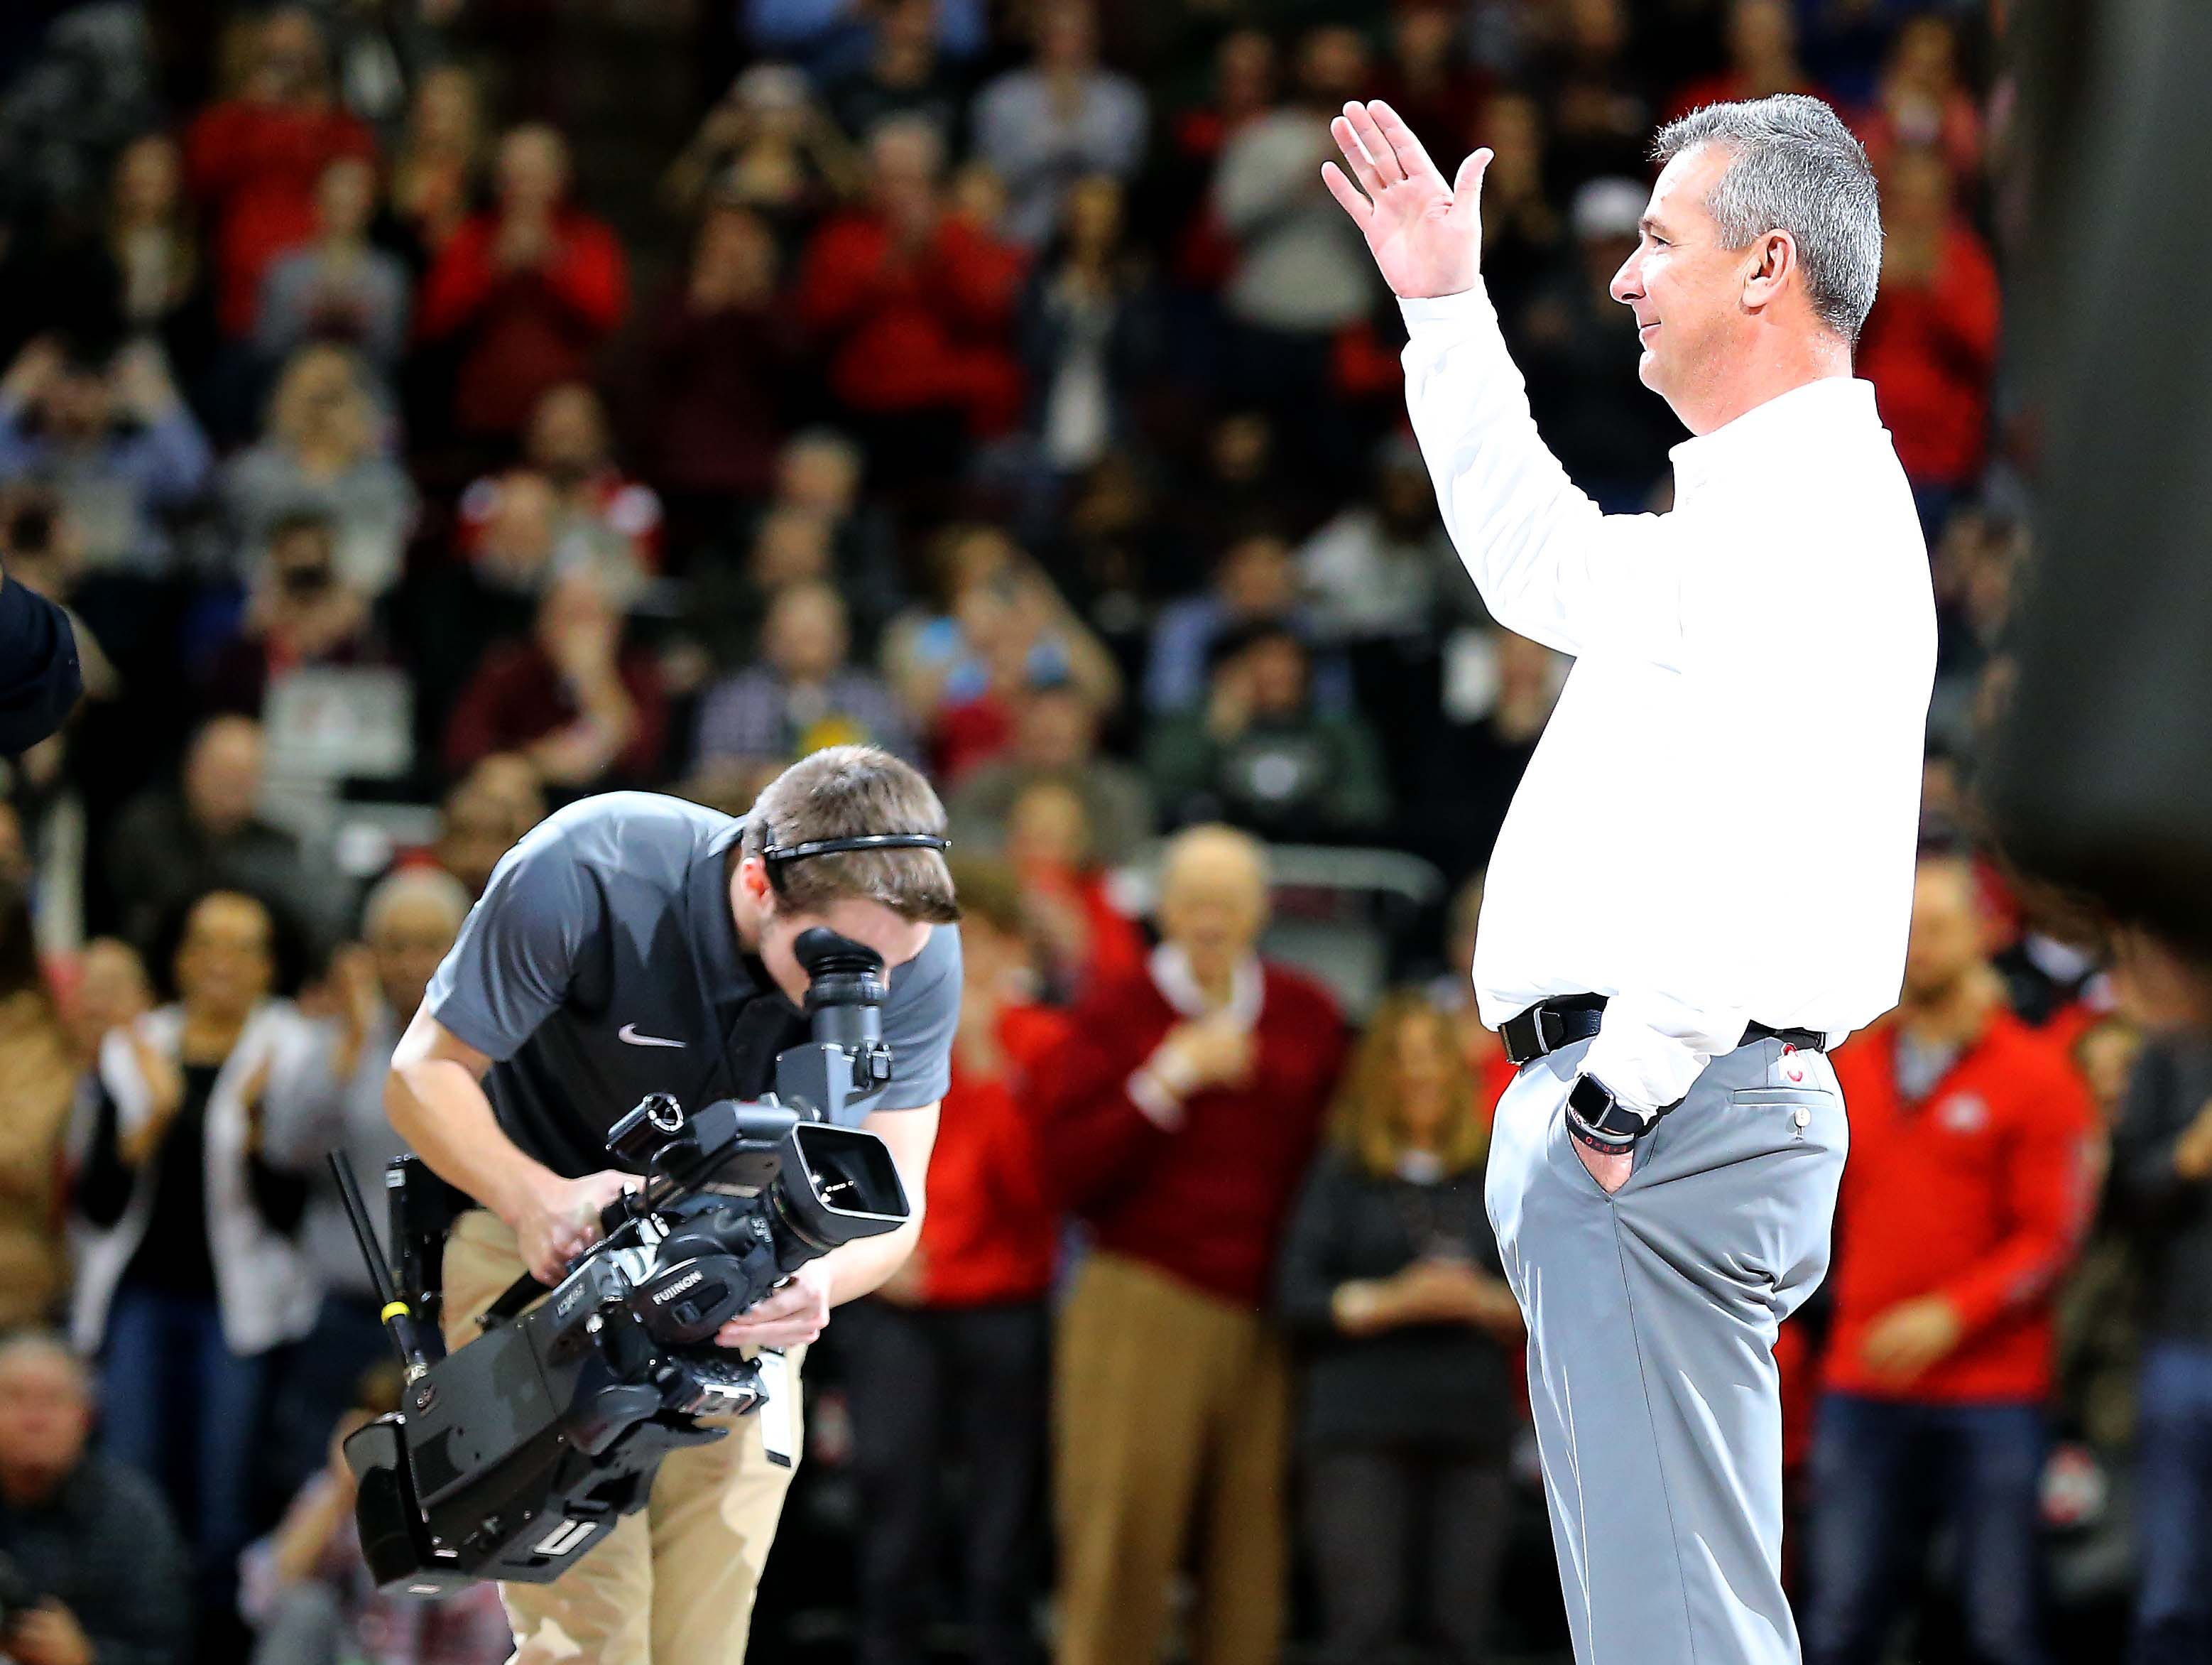 Jan 5, 2019; Columbus, OH, USA; Ohio State Buckeyes former head coach football coach Urban Meyer during the first half against the Michigan State Spartans at Value City Arena. Mandatory Credit: Joe Maiorana-USA TODAY Sports